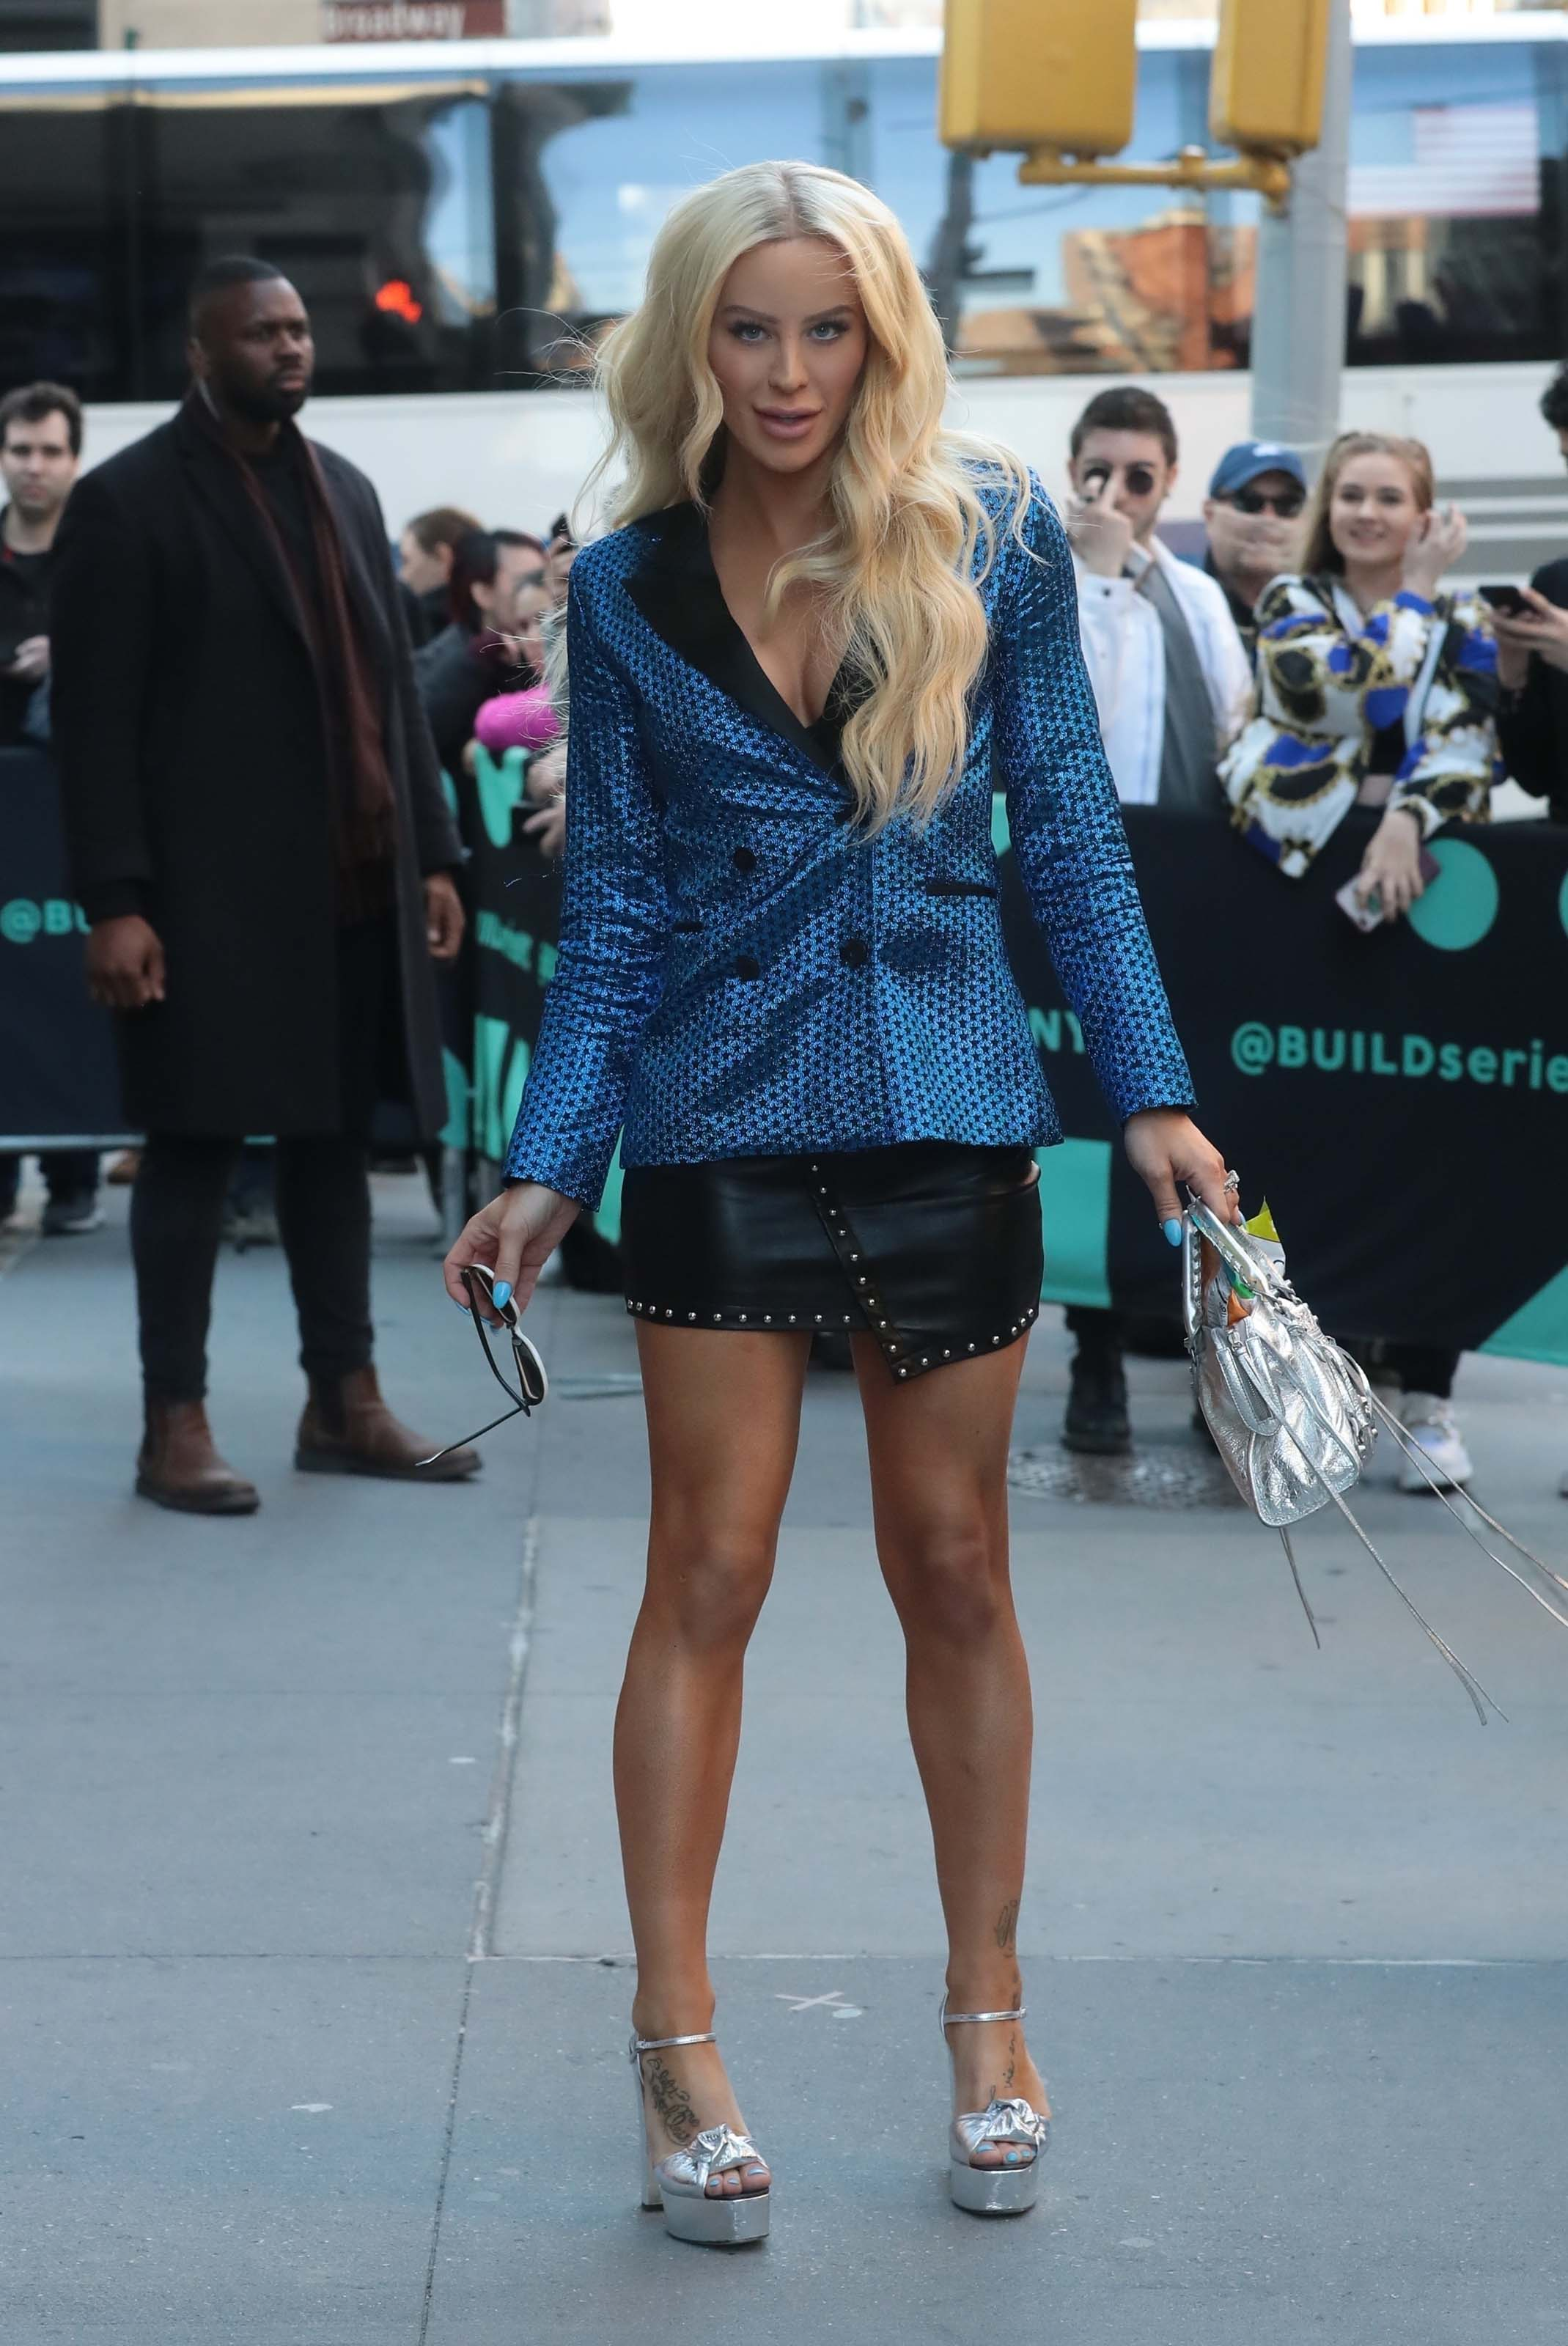 Gigi Gorgeous at AOL Build Series Studios